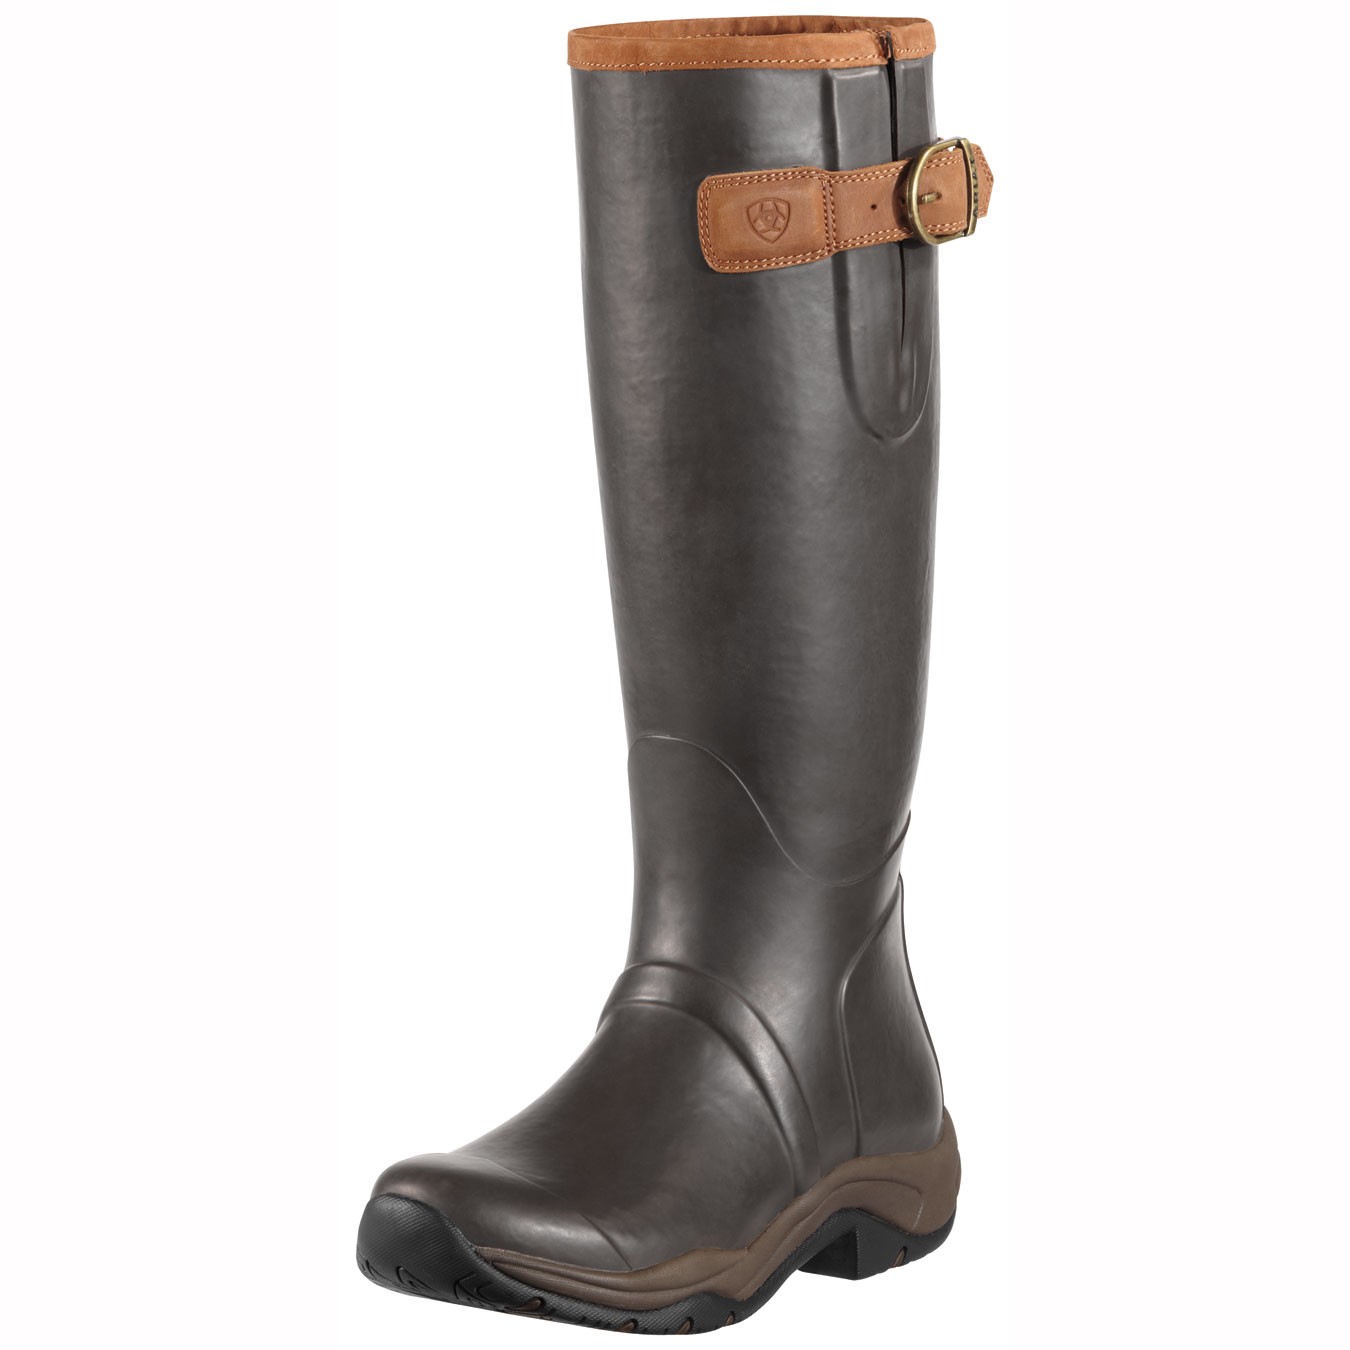 Ariat StormStopper Tall Wellies - Brown - Redpost Equestrian